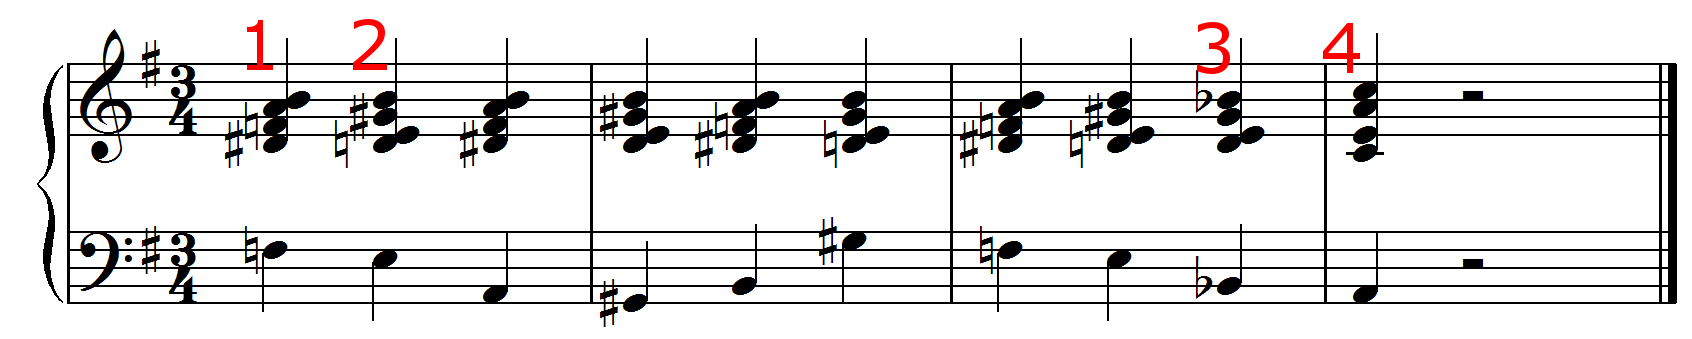 The French Augmented Sixth Chord